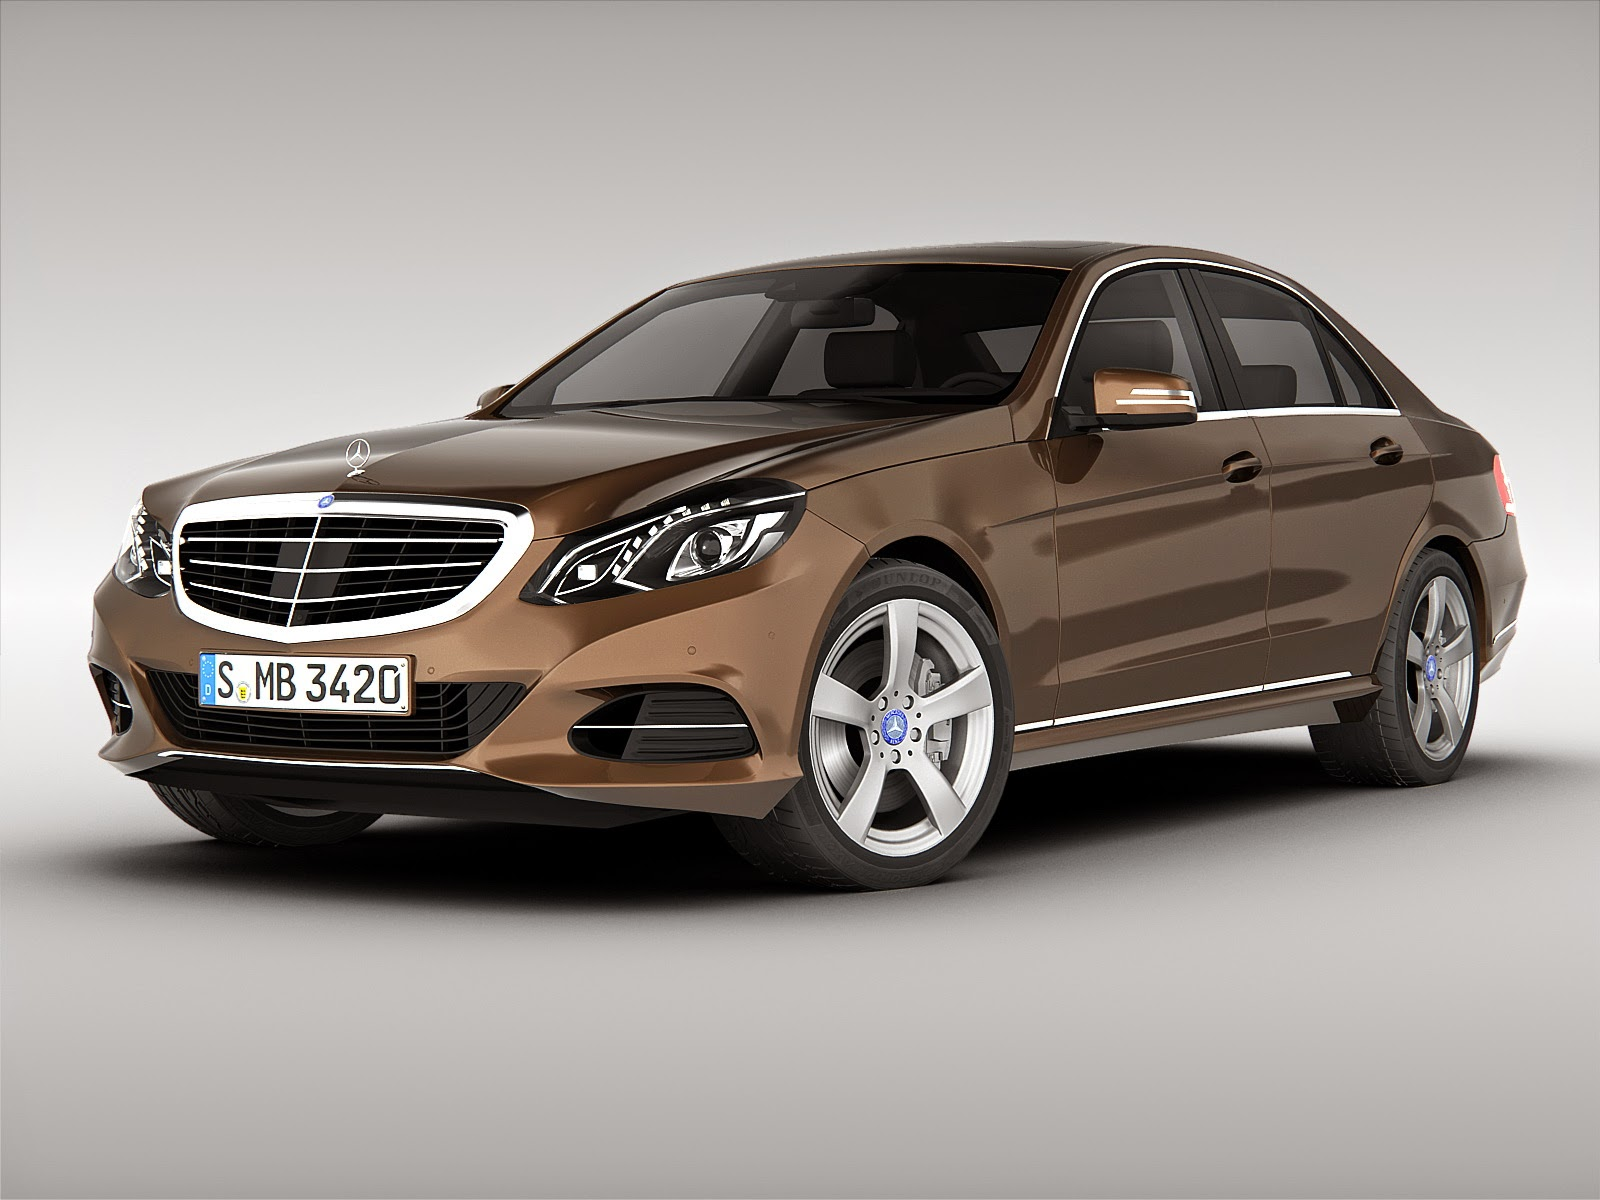 2014 mercedes benz e class wallpaper car reviews for 2014 e class mercedes benz